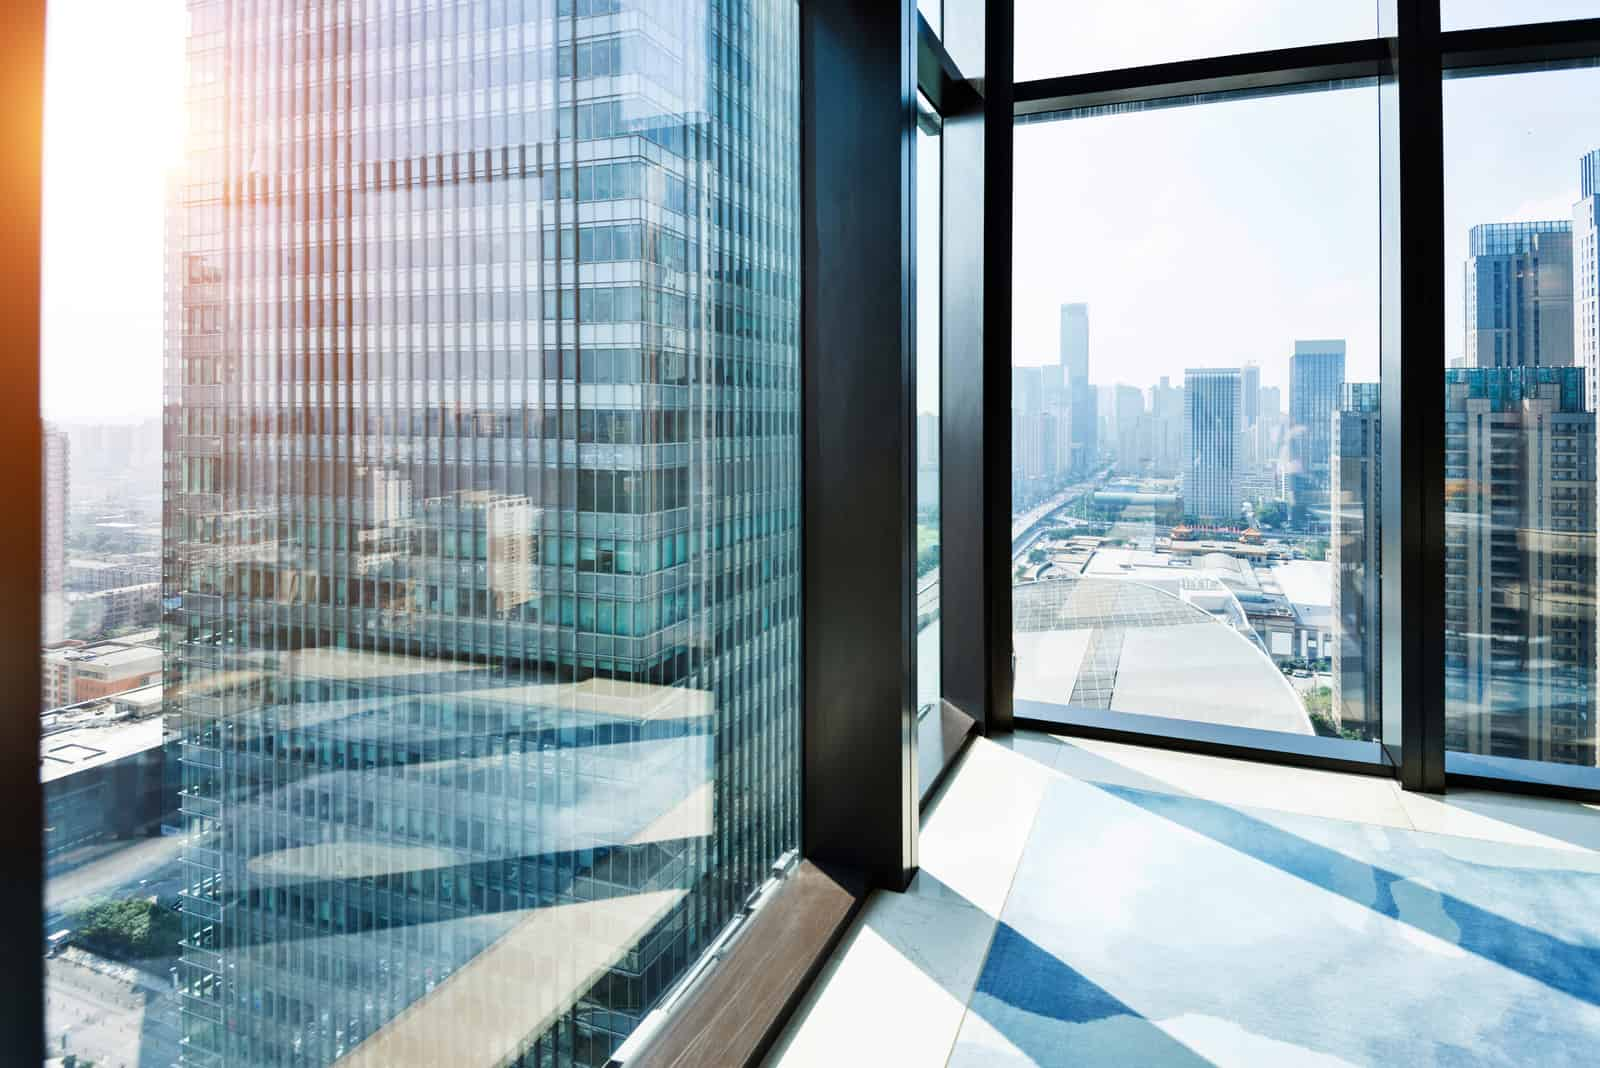 Modern building and cityscape outside the window